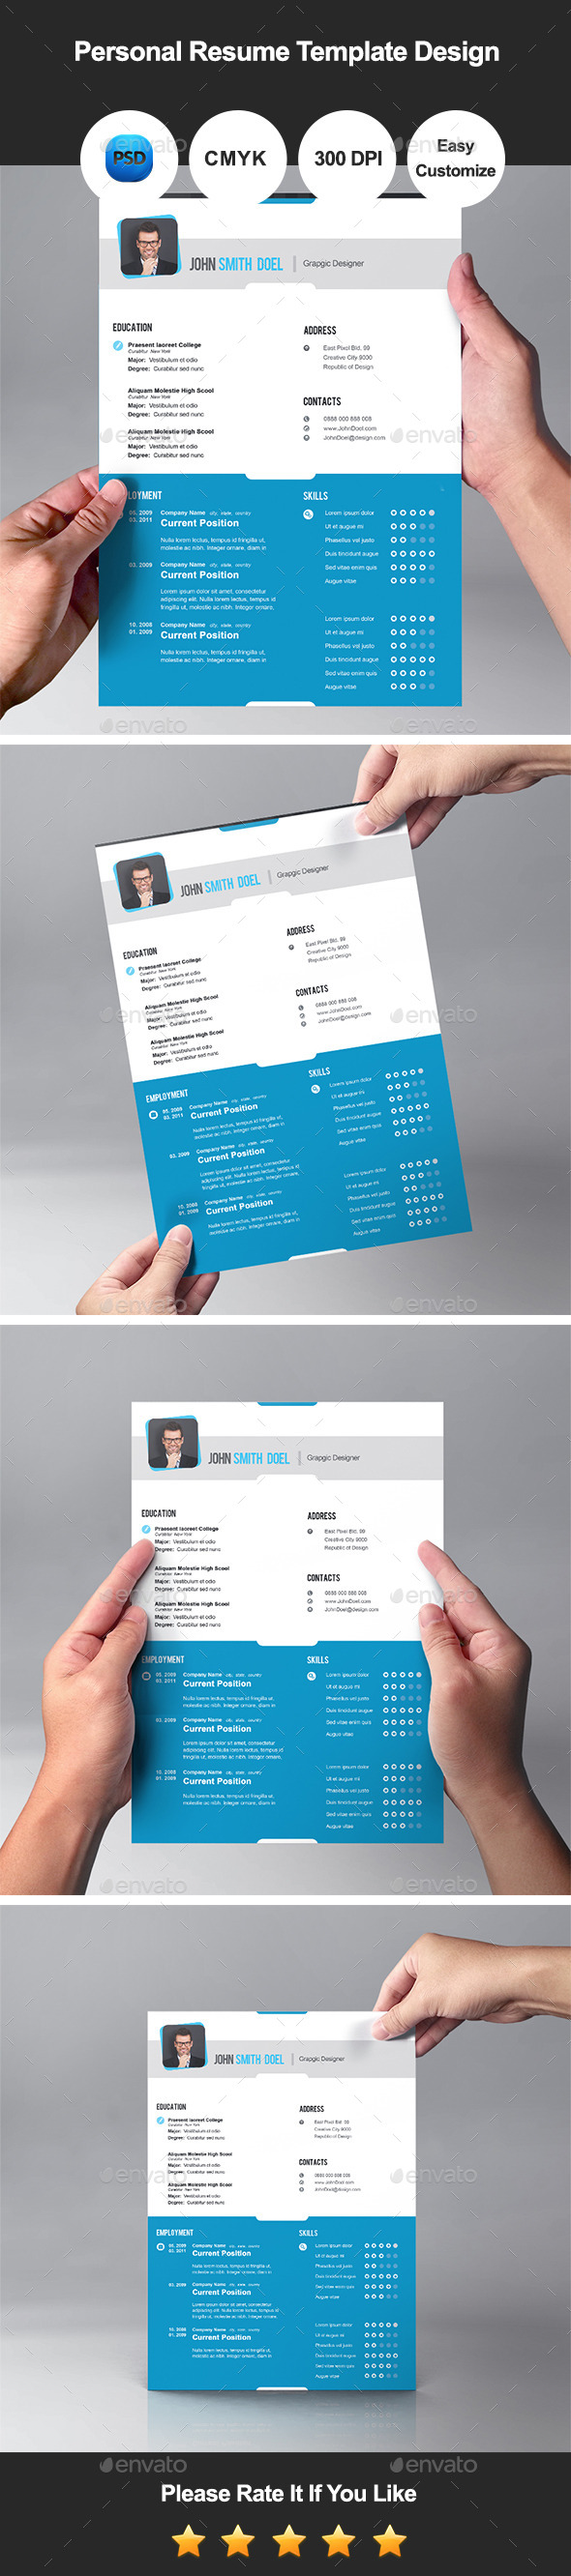 Personal Resume Template Design